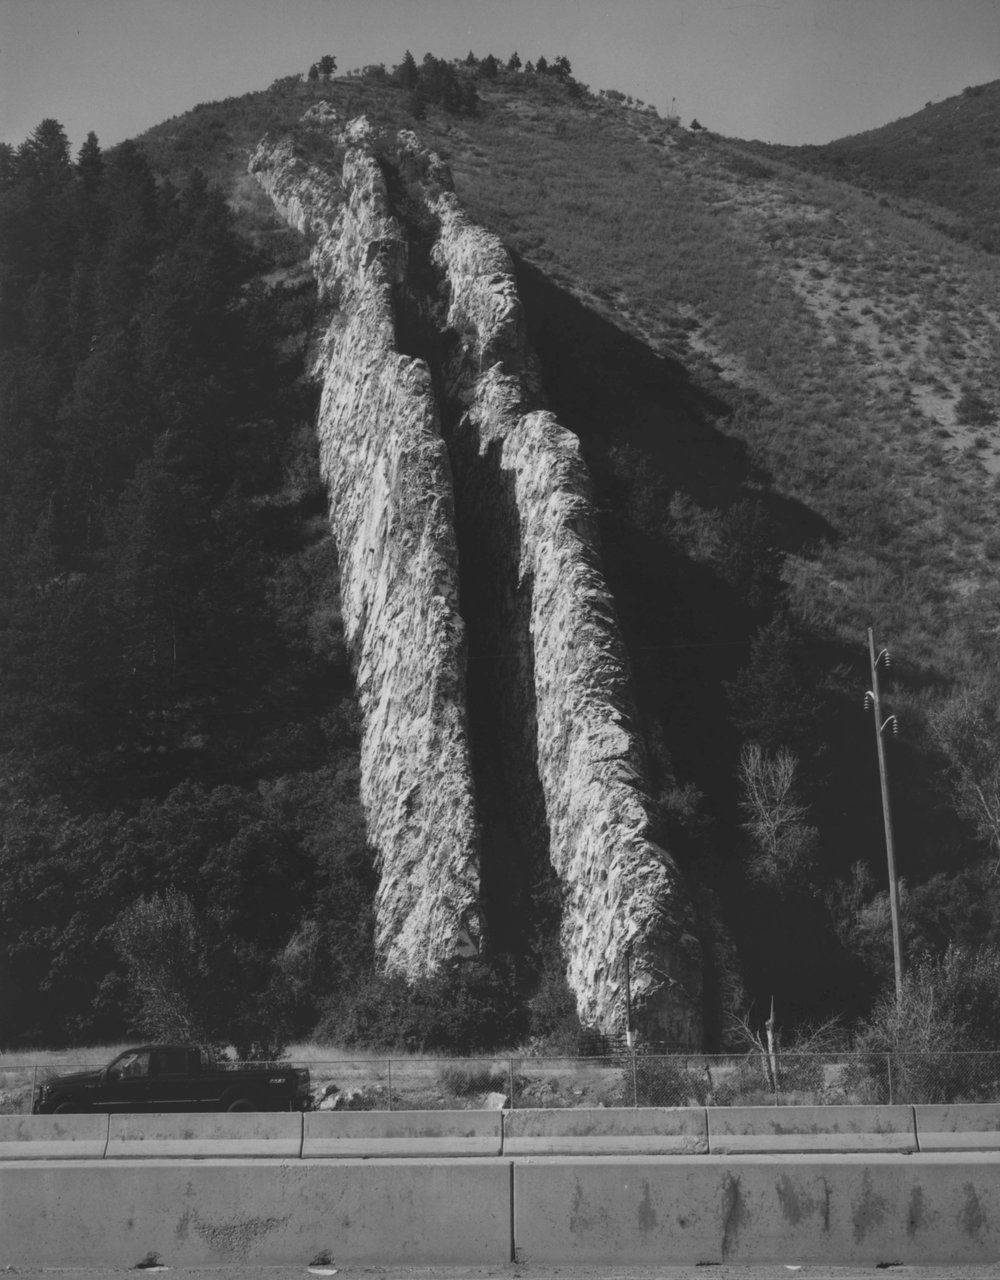 Devil's Slide is a bizarre, giant-size limestone chute, located on the south side of Interstate- 84 in Weber Canyon, Utah.   This site is a tilted remnant of sediments deposited in a sea that occupied Utah's   distant geologic past.